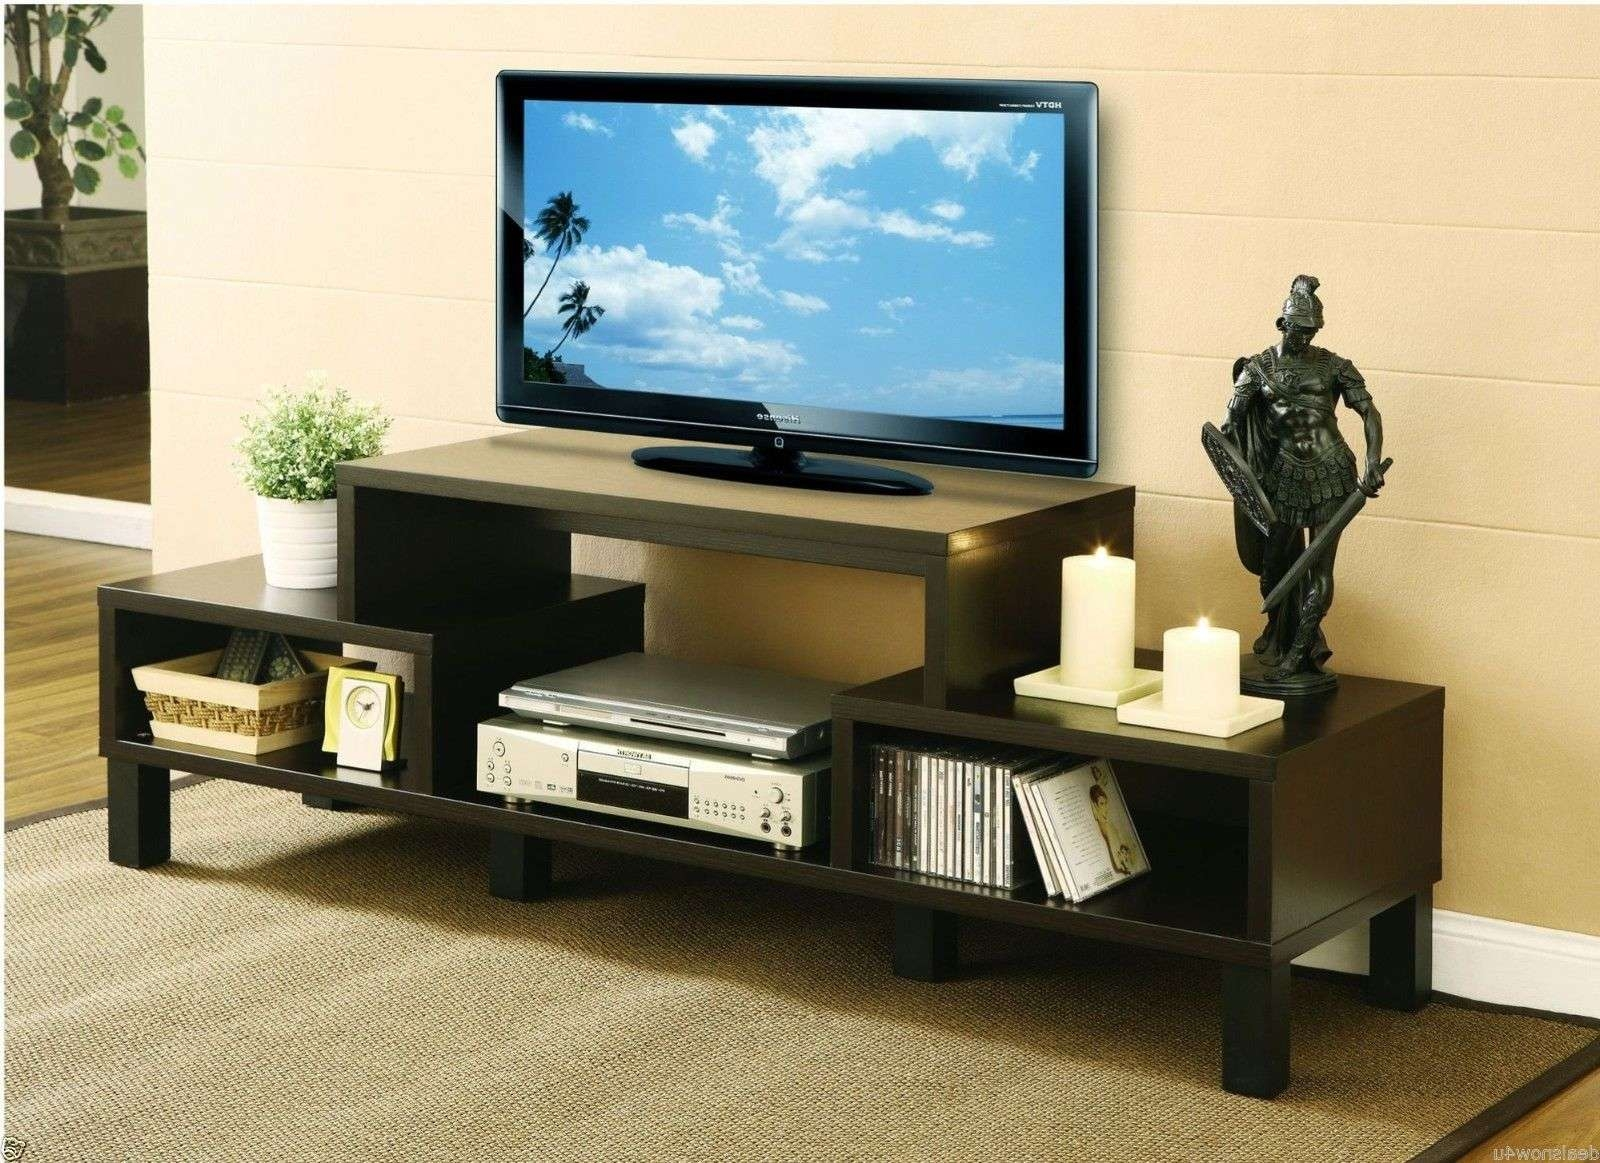 Modern Black Tone Wide Screen Tv Stand With Display Shelves And With Regard To Open Shelf Tv Stands (View 7 of 15)